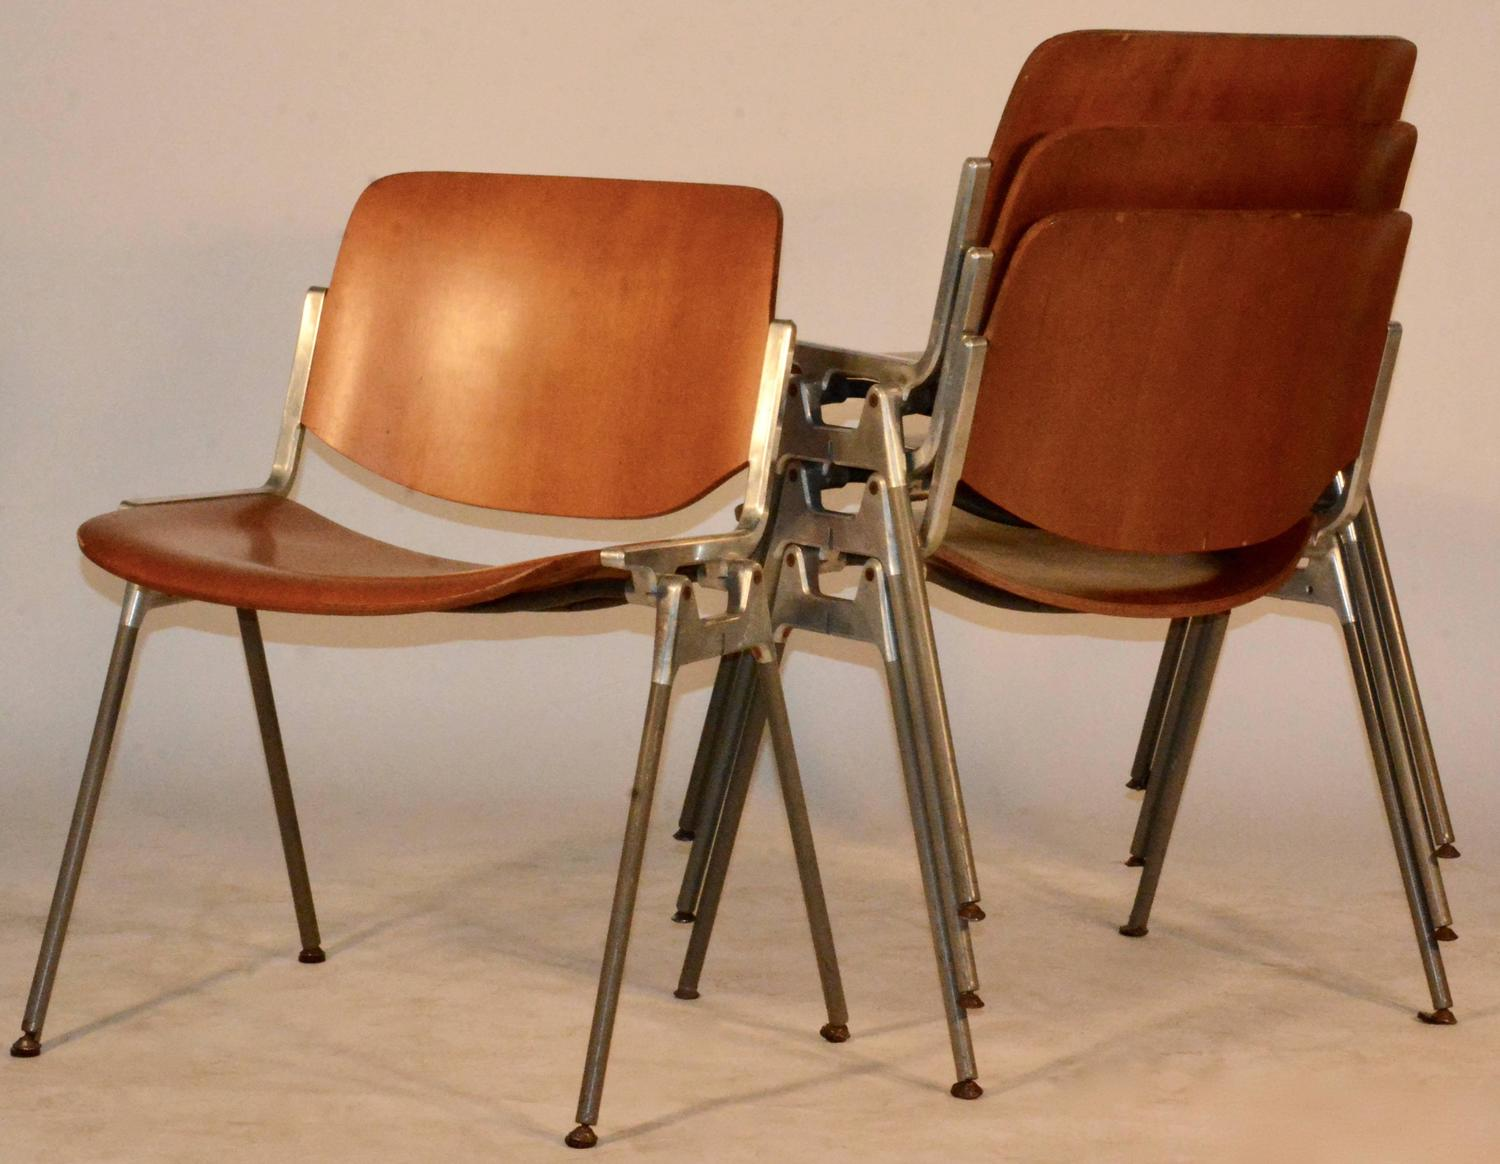 conference chairs for sale ergonomic chair johannesburg set of four giancarlo piretti